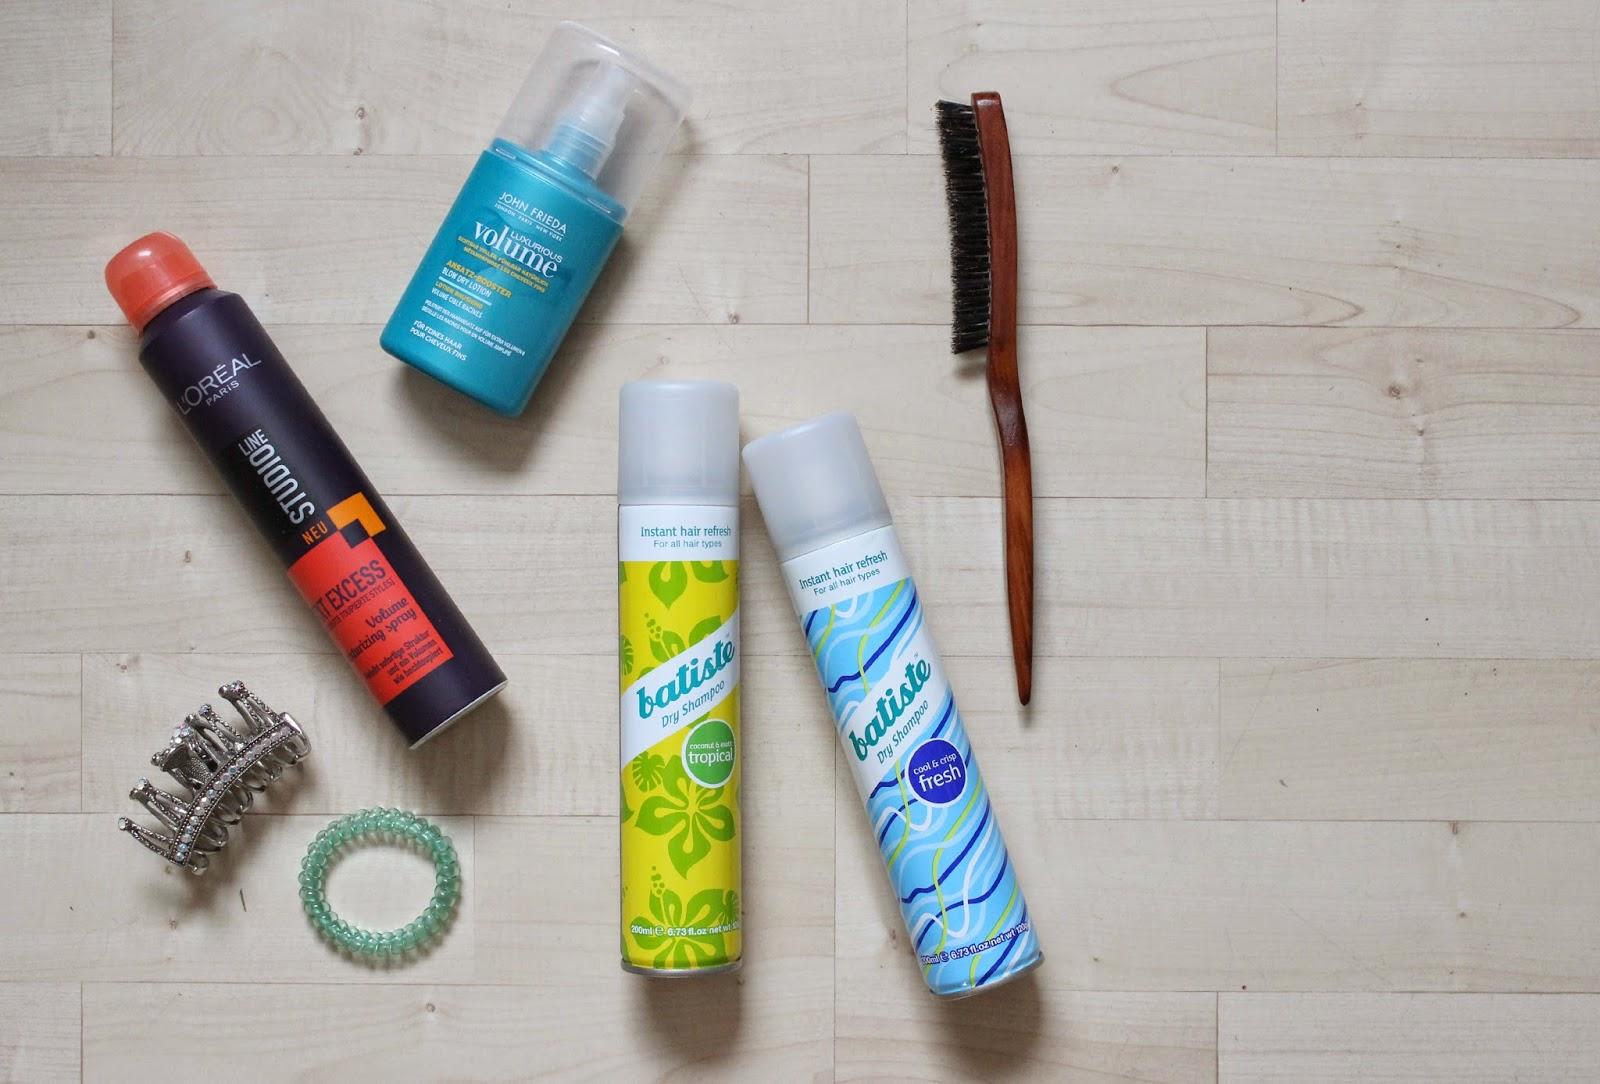 hair products batiste john frieda L'oreal